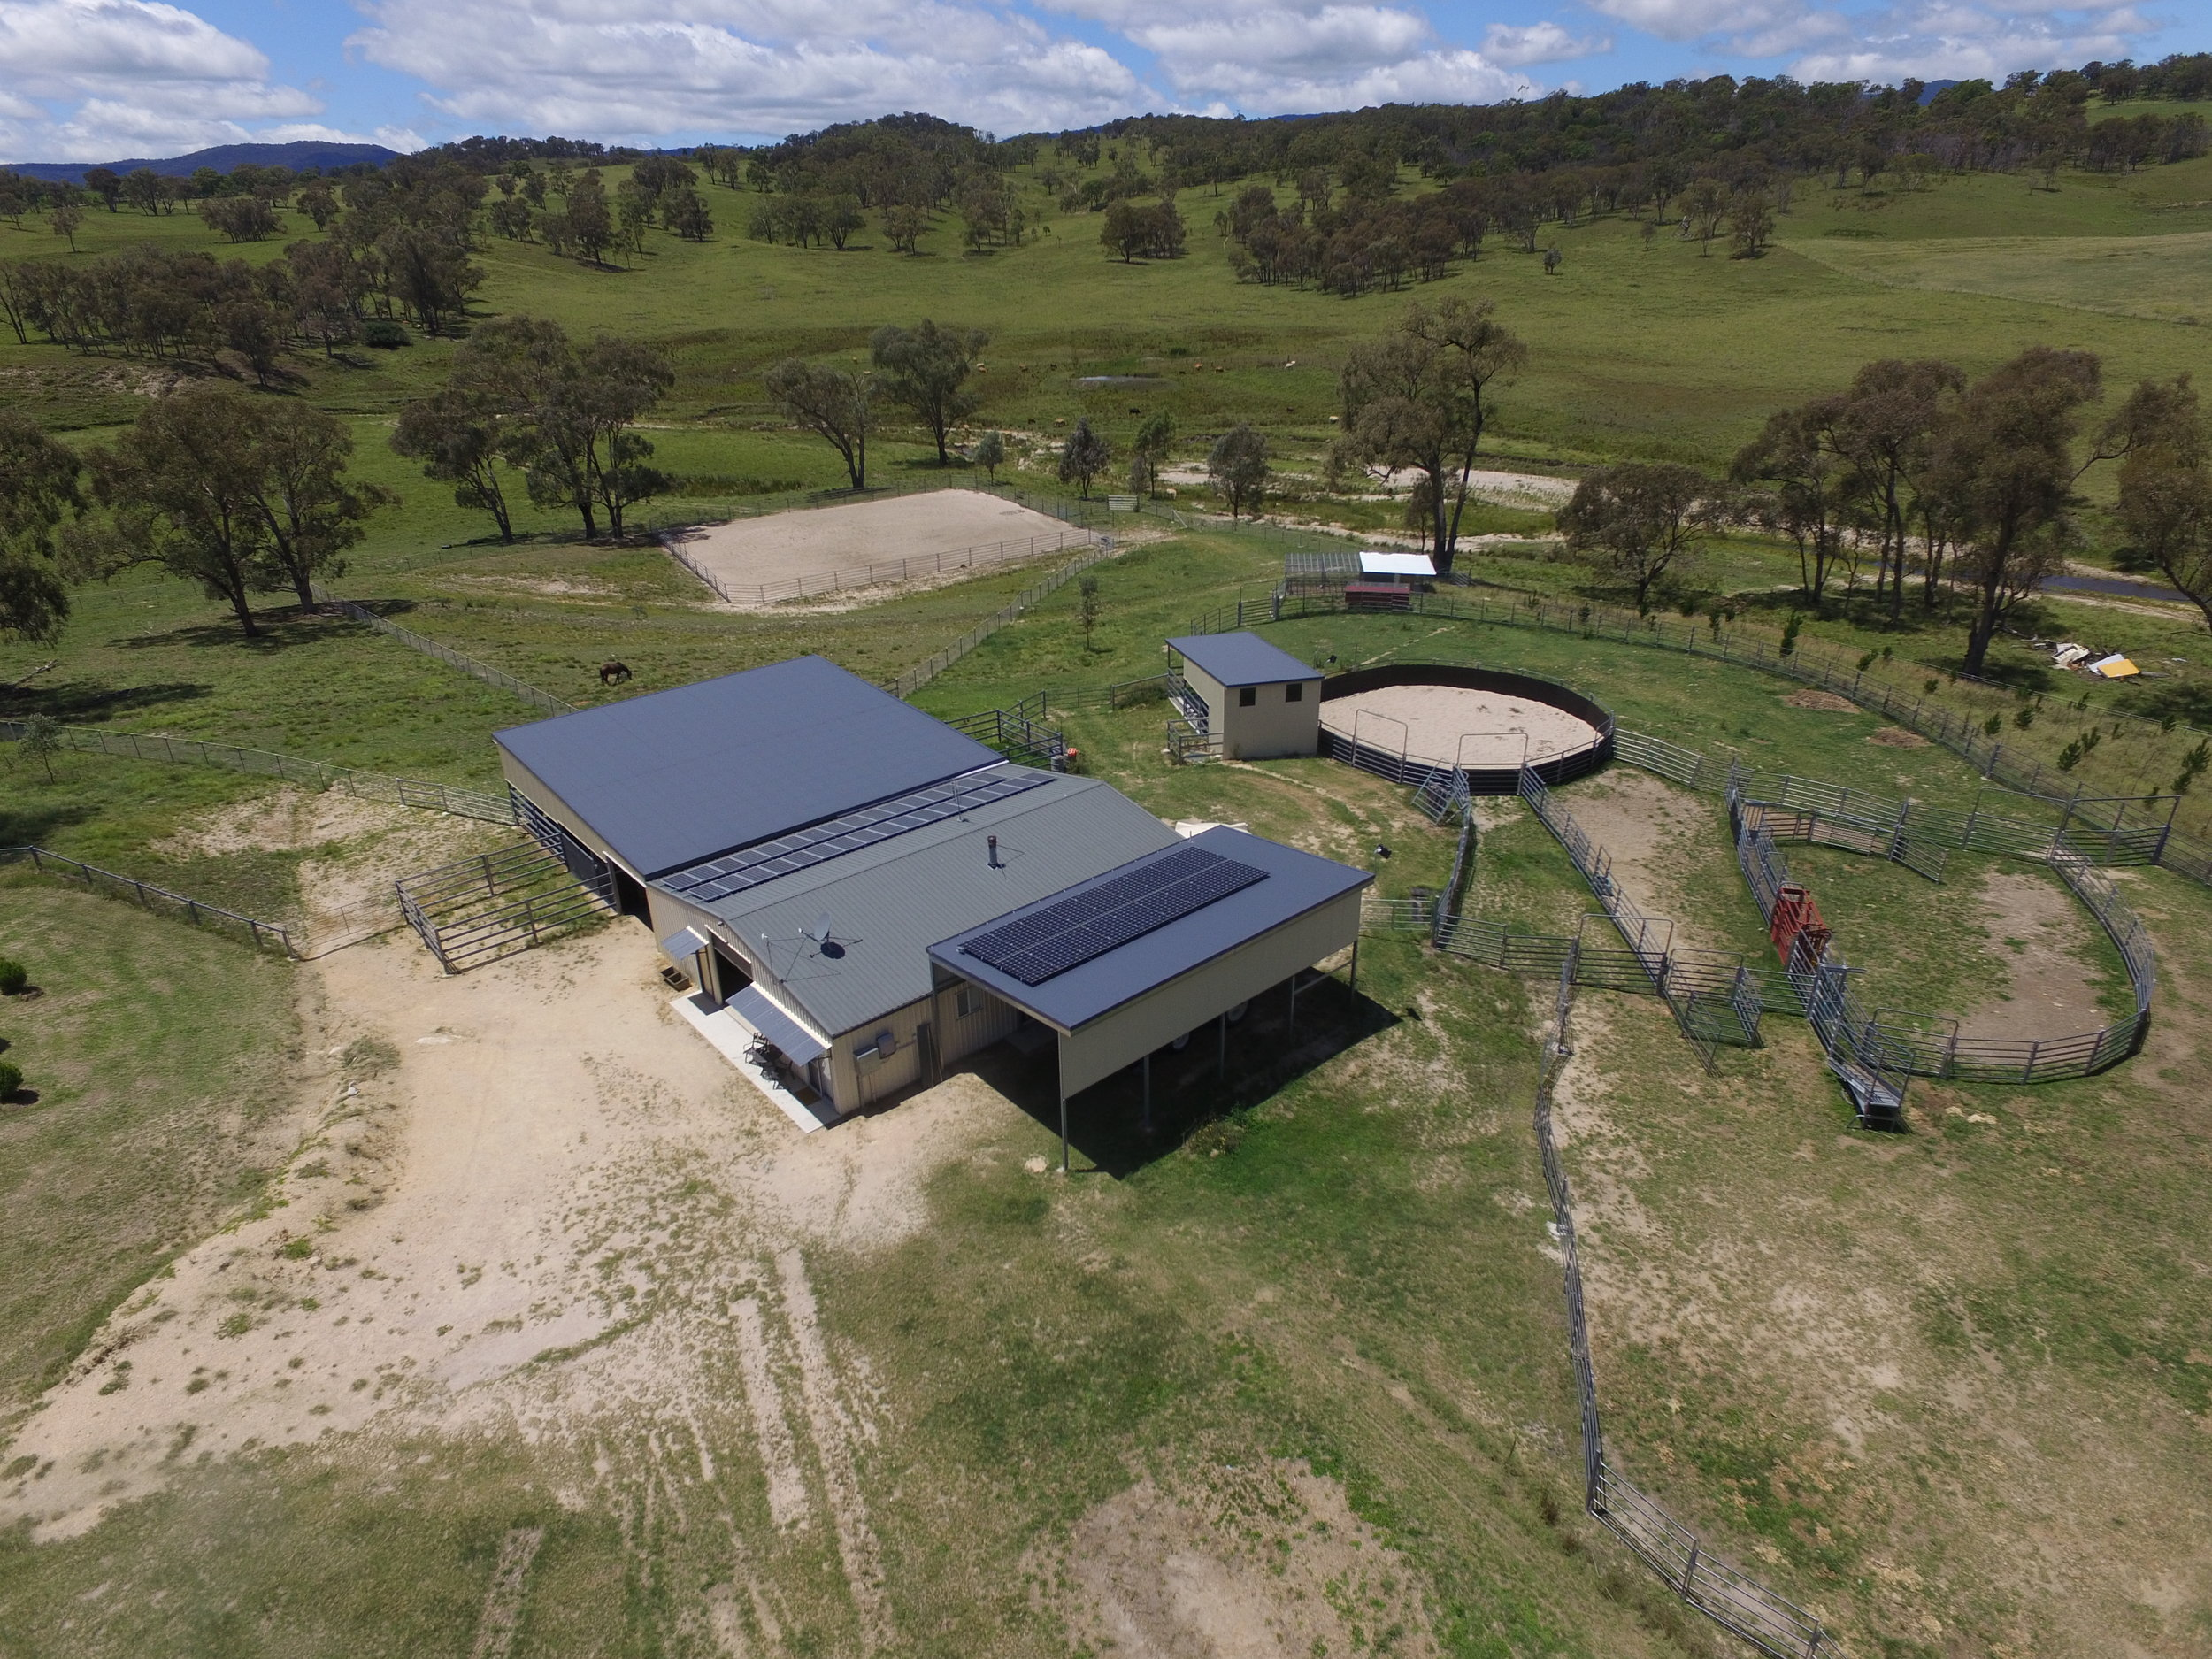 Accomodation and Stable Complex with Yards Round Yard and Arena